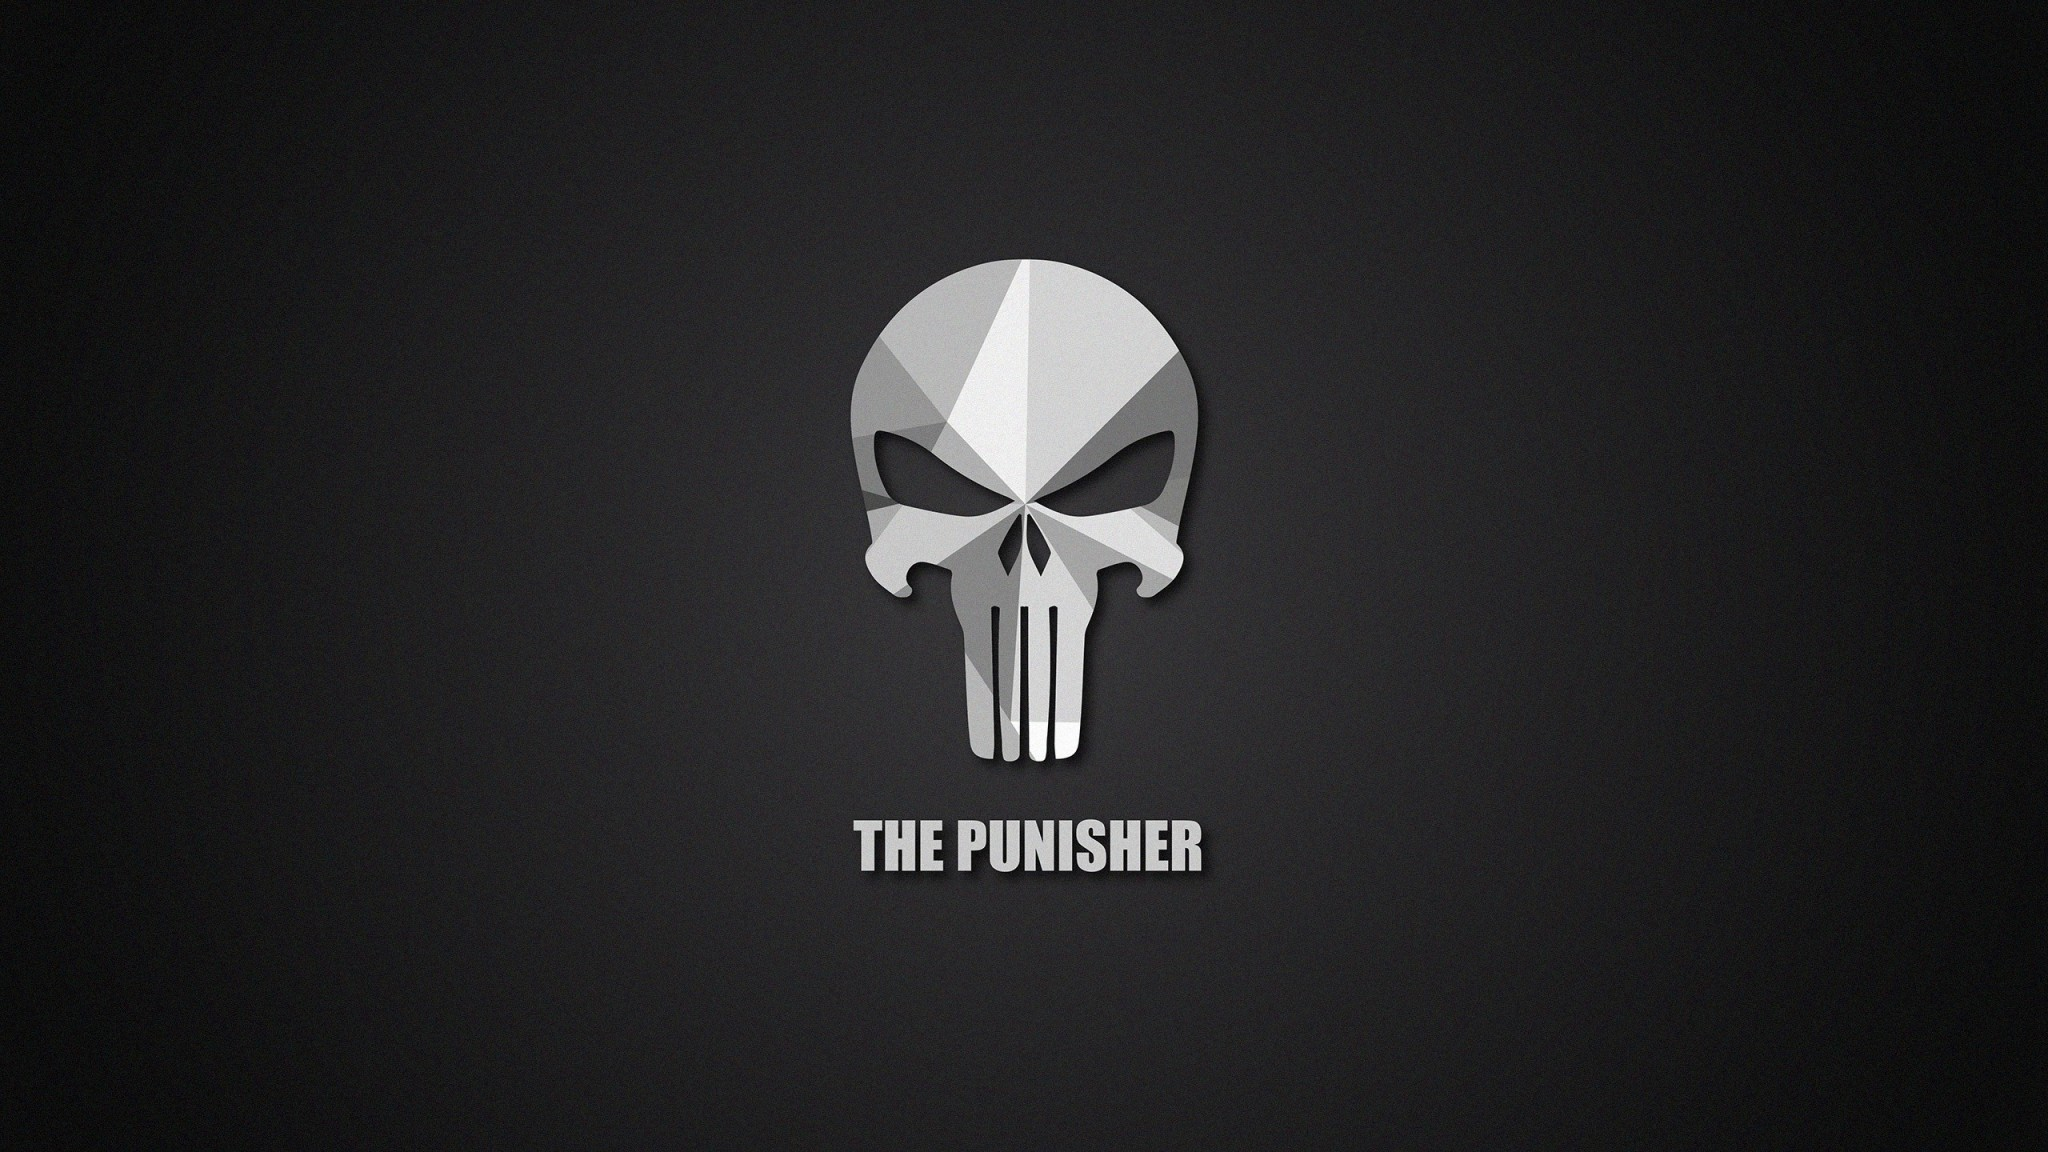 2048x1152 Punisher Logo Google Search Desktop Background